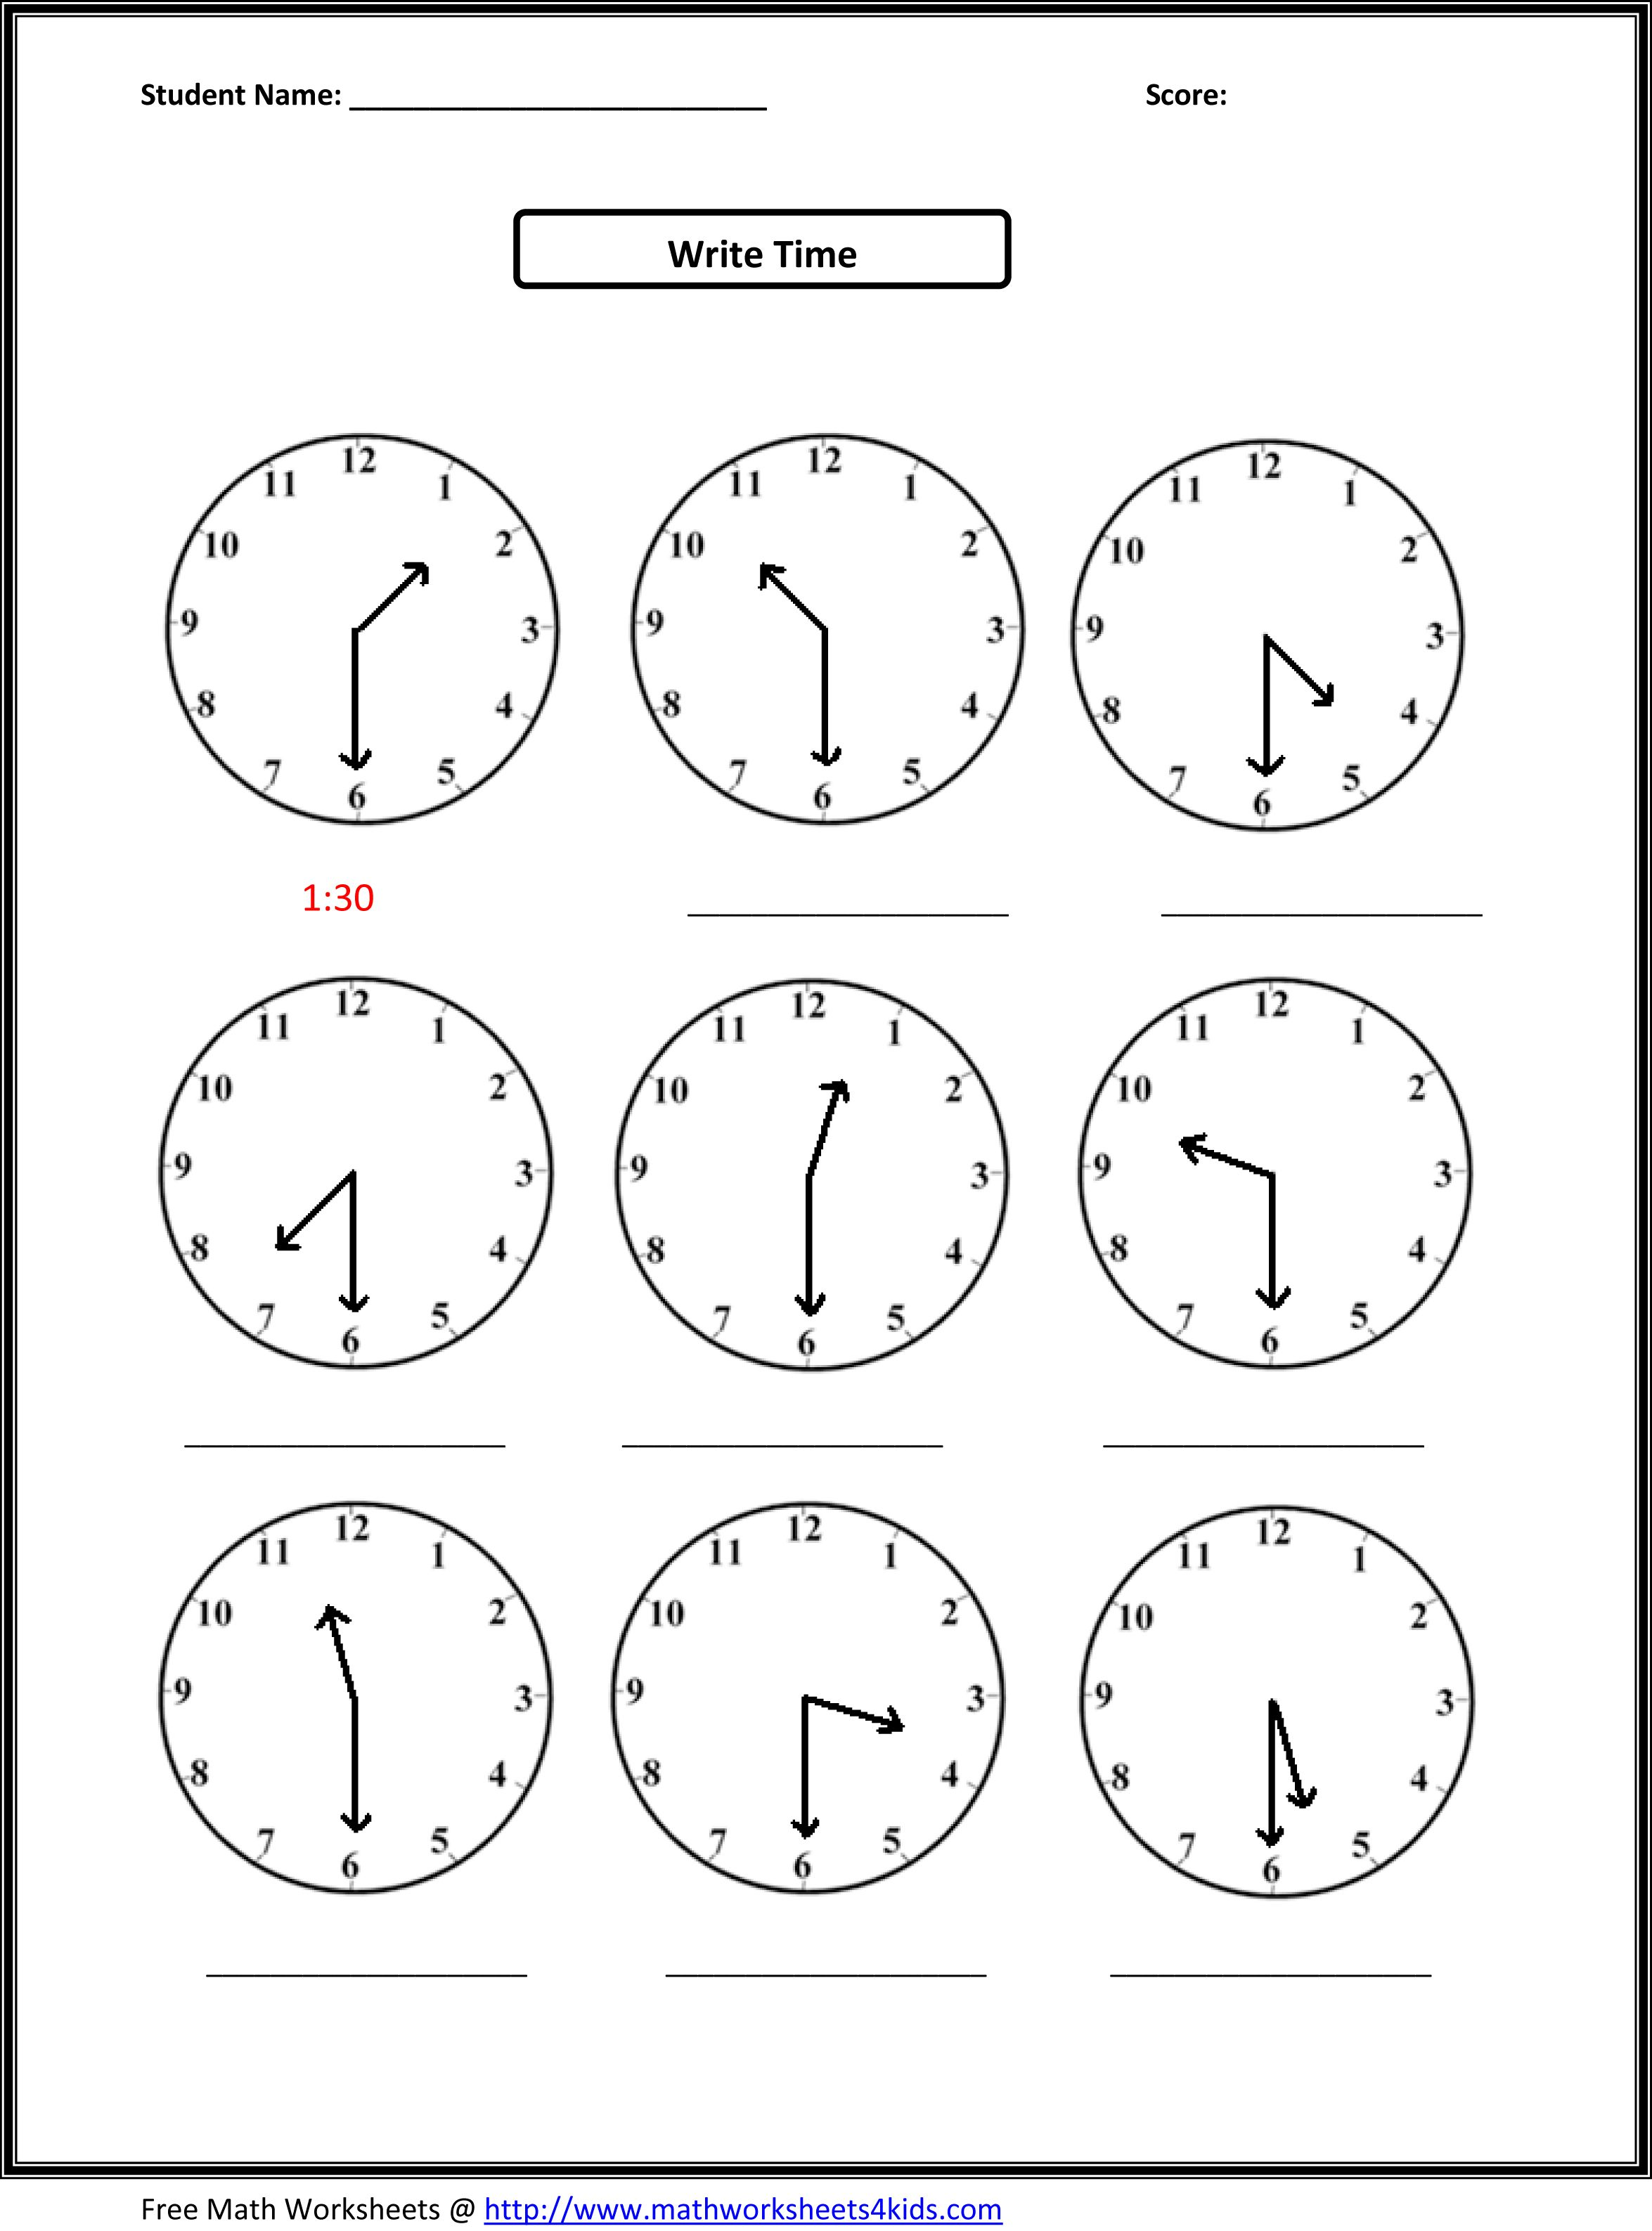 Proatmealus  Prepossessing Worksheet On Time For Grade   Reocurent With Lovely Free Printable Telling Time Worksheets Nd Grade  Reocurent With Appealing Adding Vectors Worksheet Also Goal Setting For College Students Worksheet In Addition Participle Worksheets And Ratio And Proportion Word Problems Worksheet As Well As Pdf English Grammar Worksheets Additionally Stages Of Labor Worksheet From Reocurentcom With Proatmealus  Lovely Worksheet On Time For Grade   Reocurent With Appealing Free Printable Telling Time Worksheets Nd Grade  Reocurent And Prepossessing Adding Vectors Worksheet Also Goal Setting For College Students Worksheet In Addition Participle Worksheets From Reocurentcom